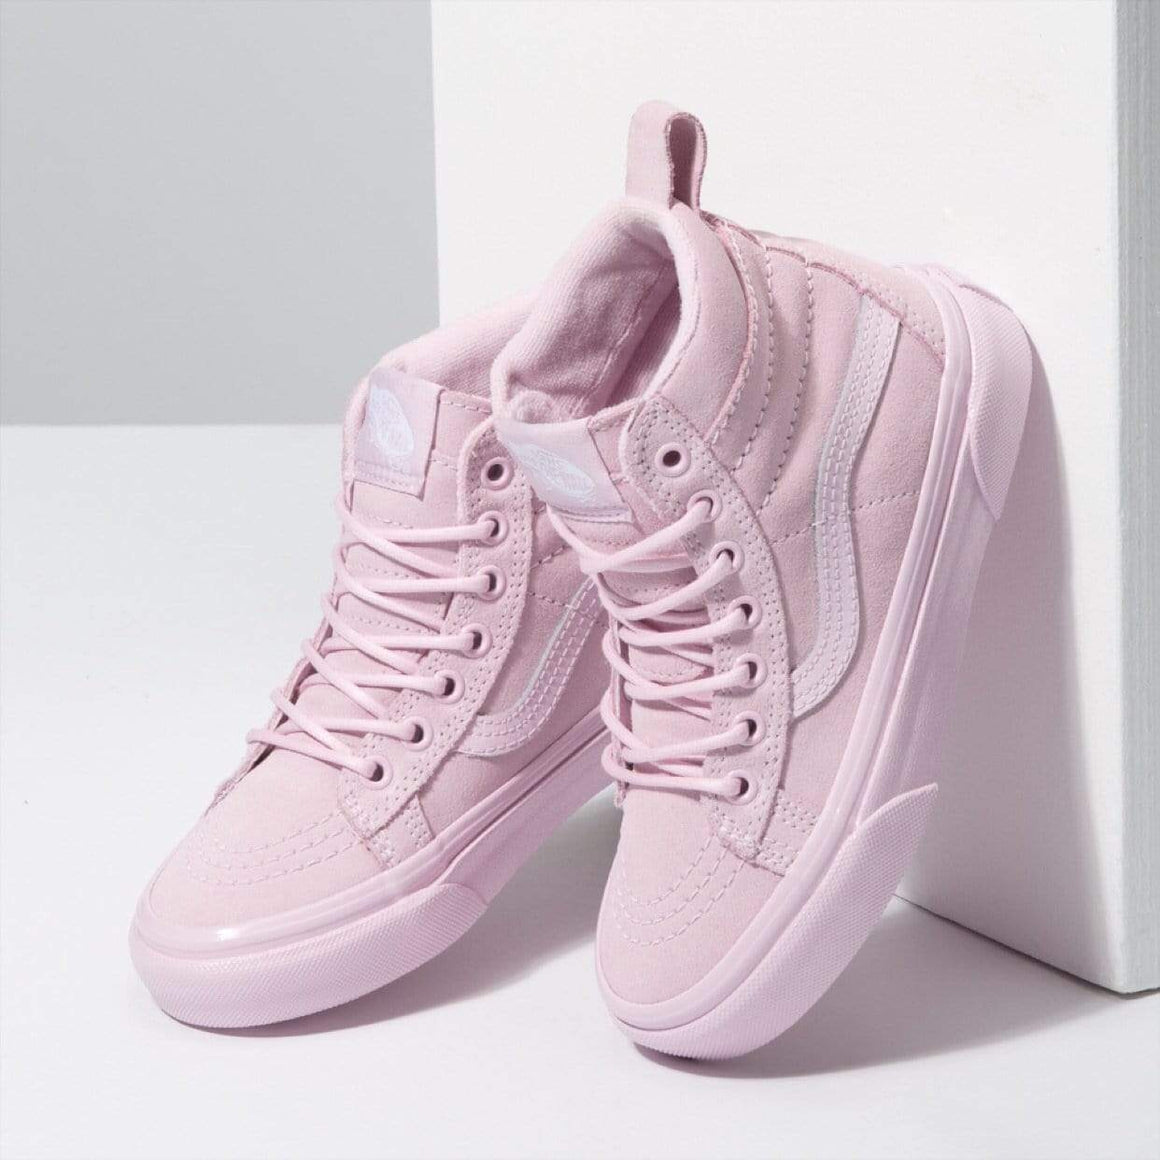 VN0A2XSNT3Y Vans - SK8-Hi MTE - Lilac (Sizes Kids 10.5 - Youth 5) footwear Vans